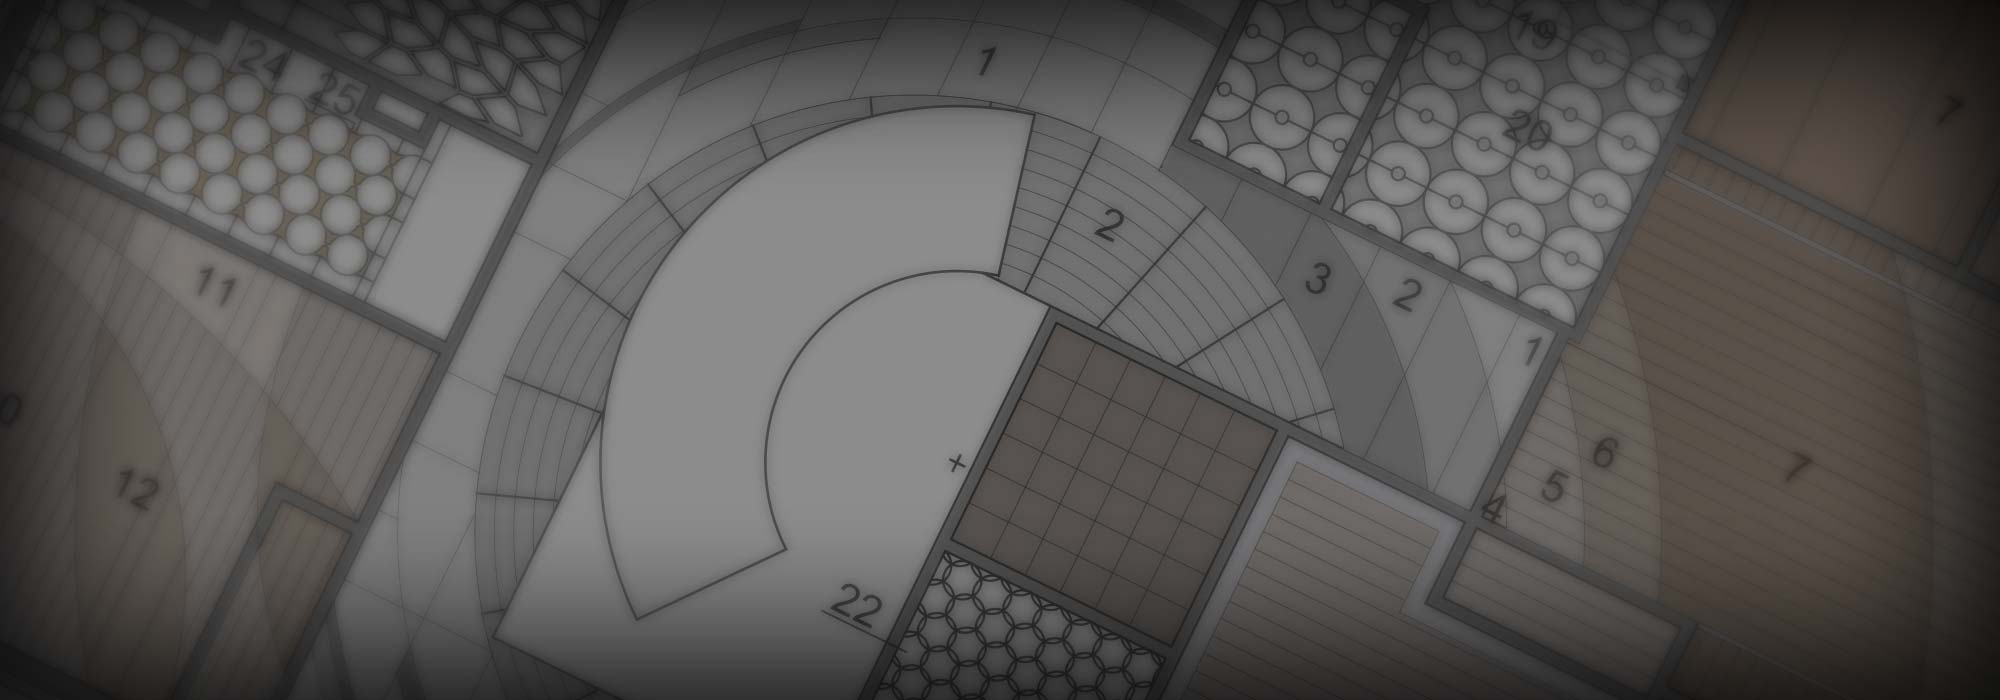 Image of architectural floor plan indicating flooring materials and paterns.